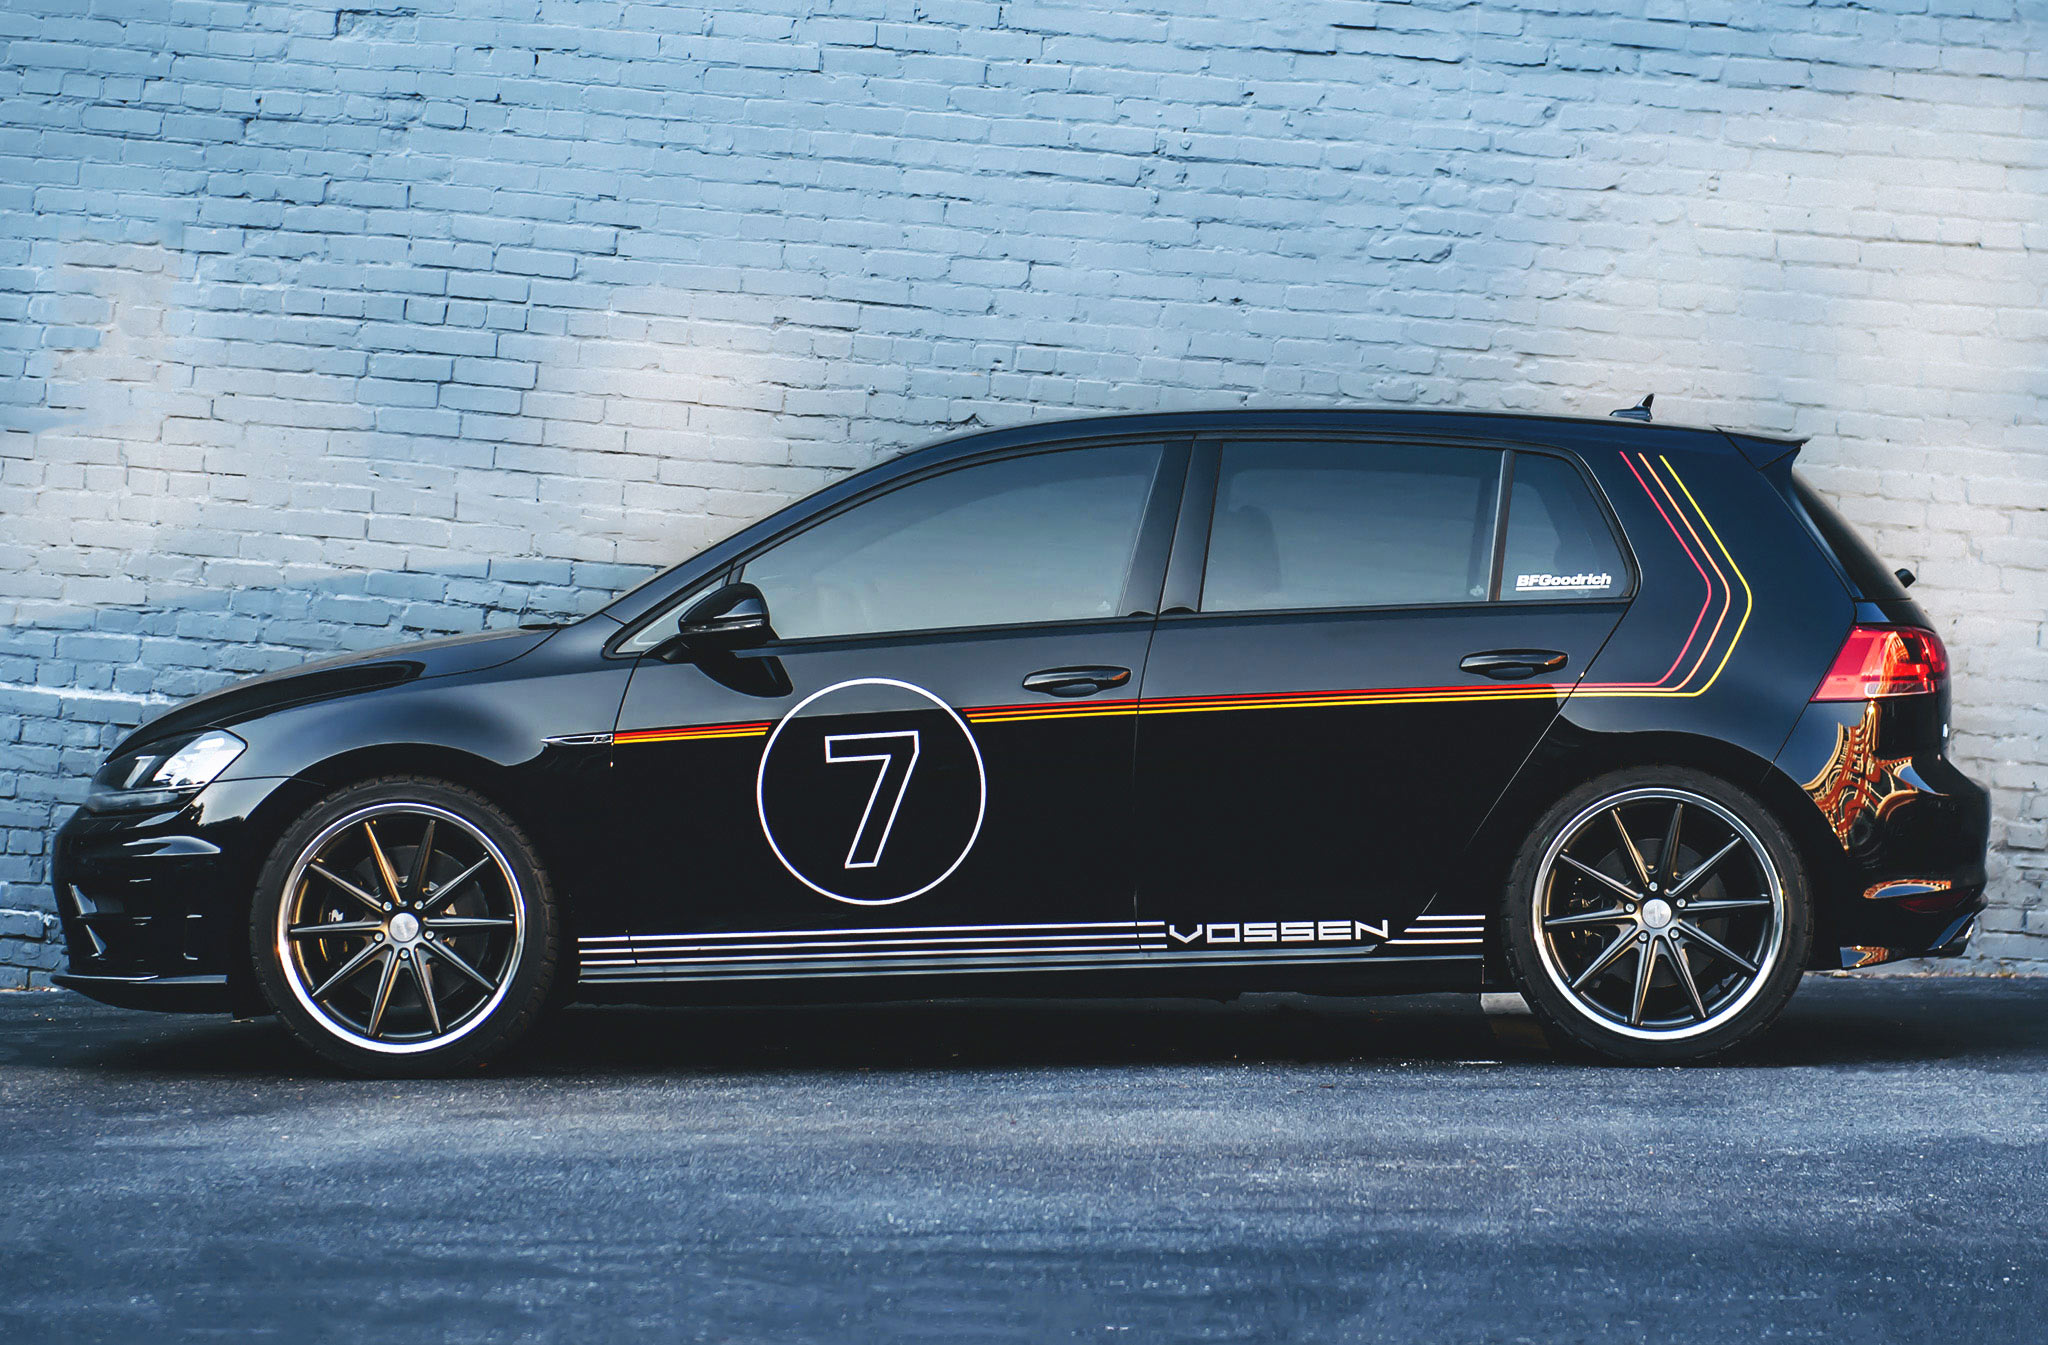 golf r heritage concept 7194